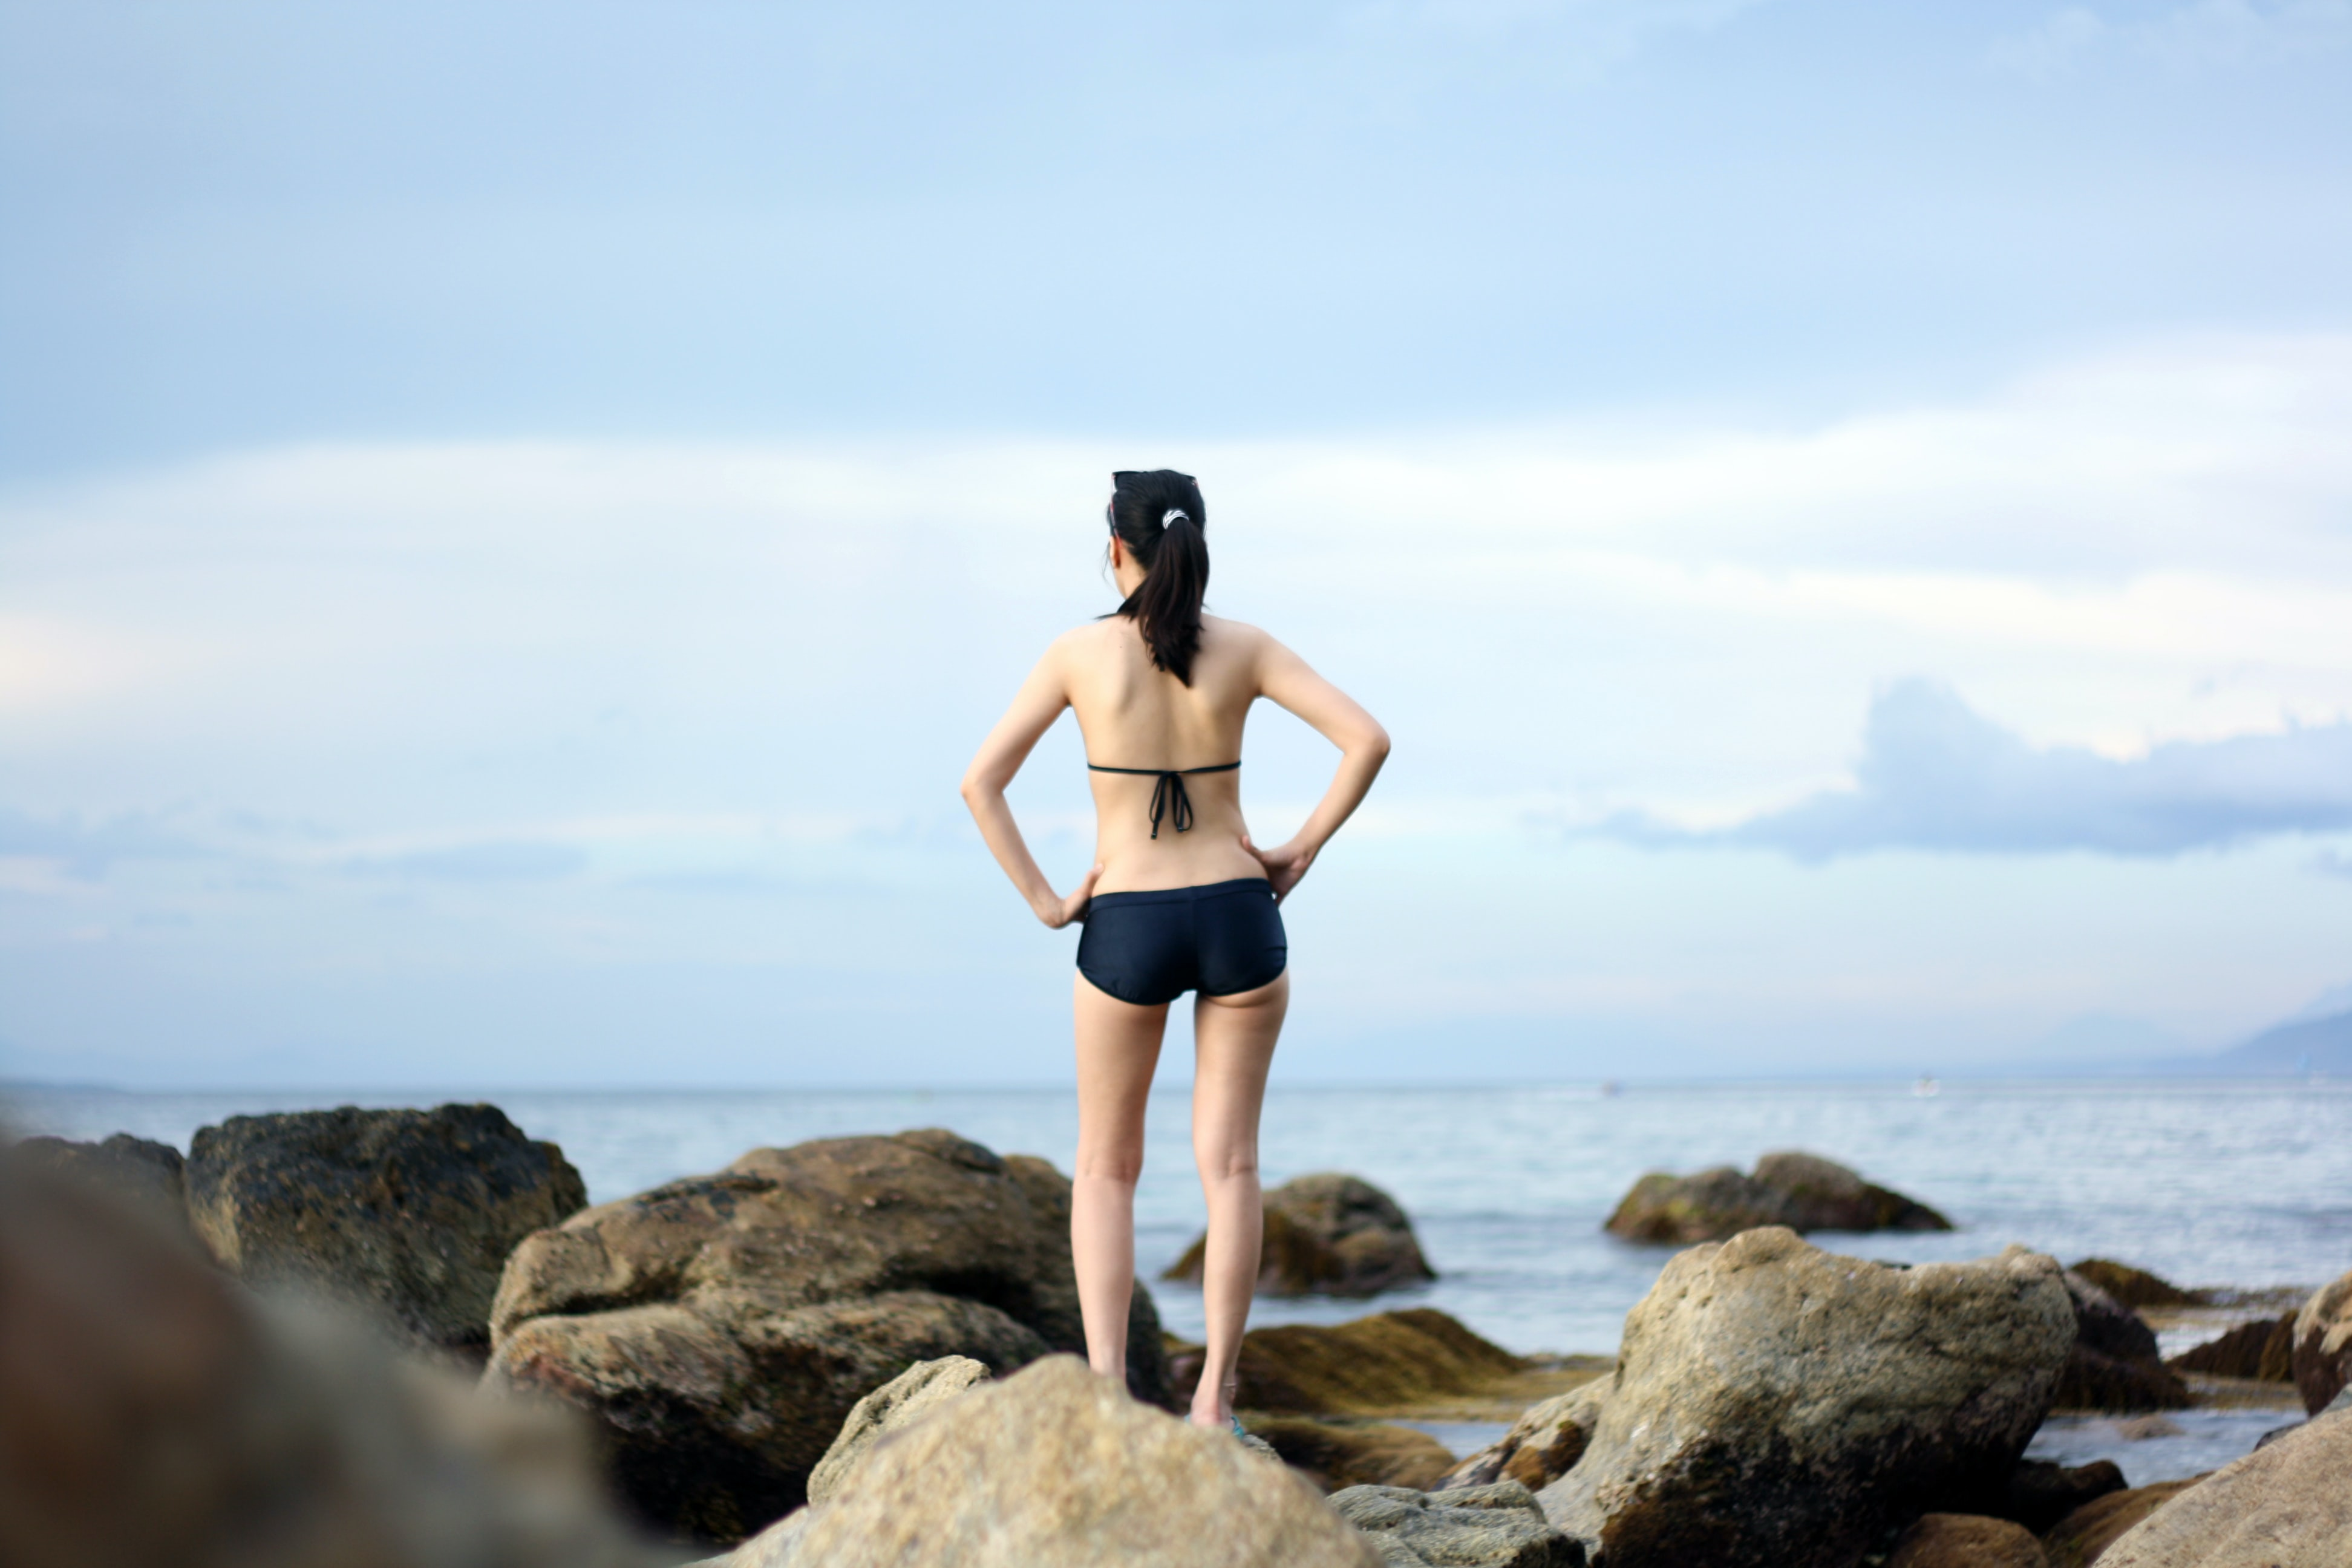 woman standing on stones near body of water